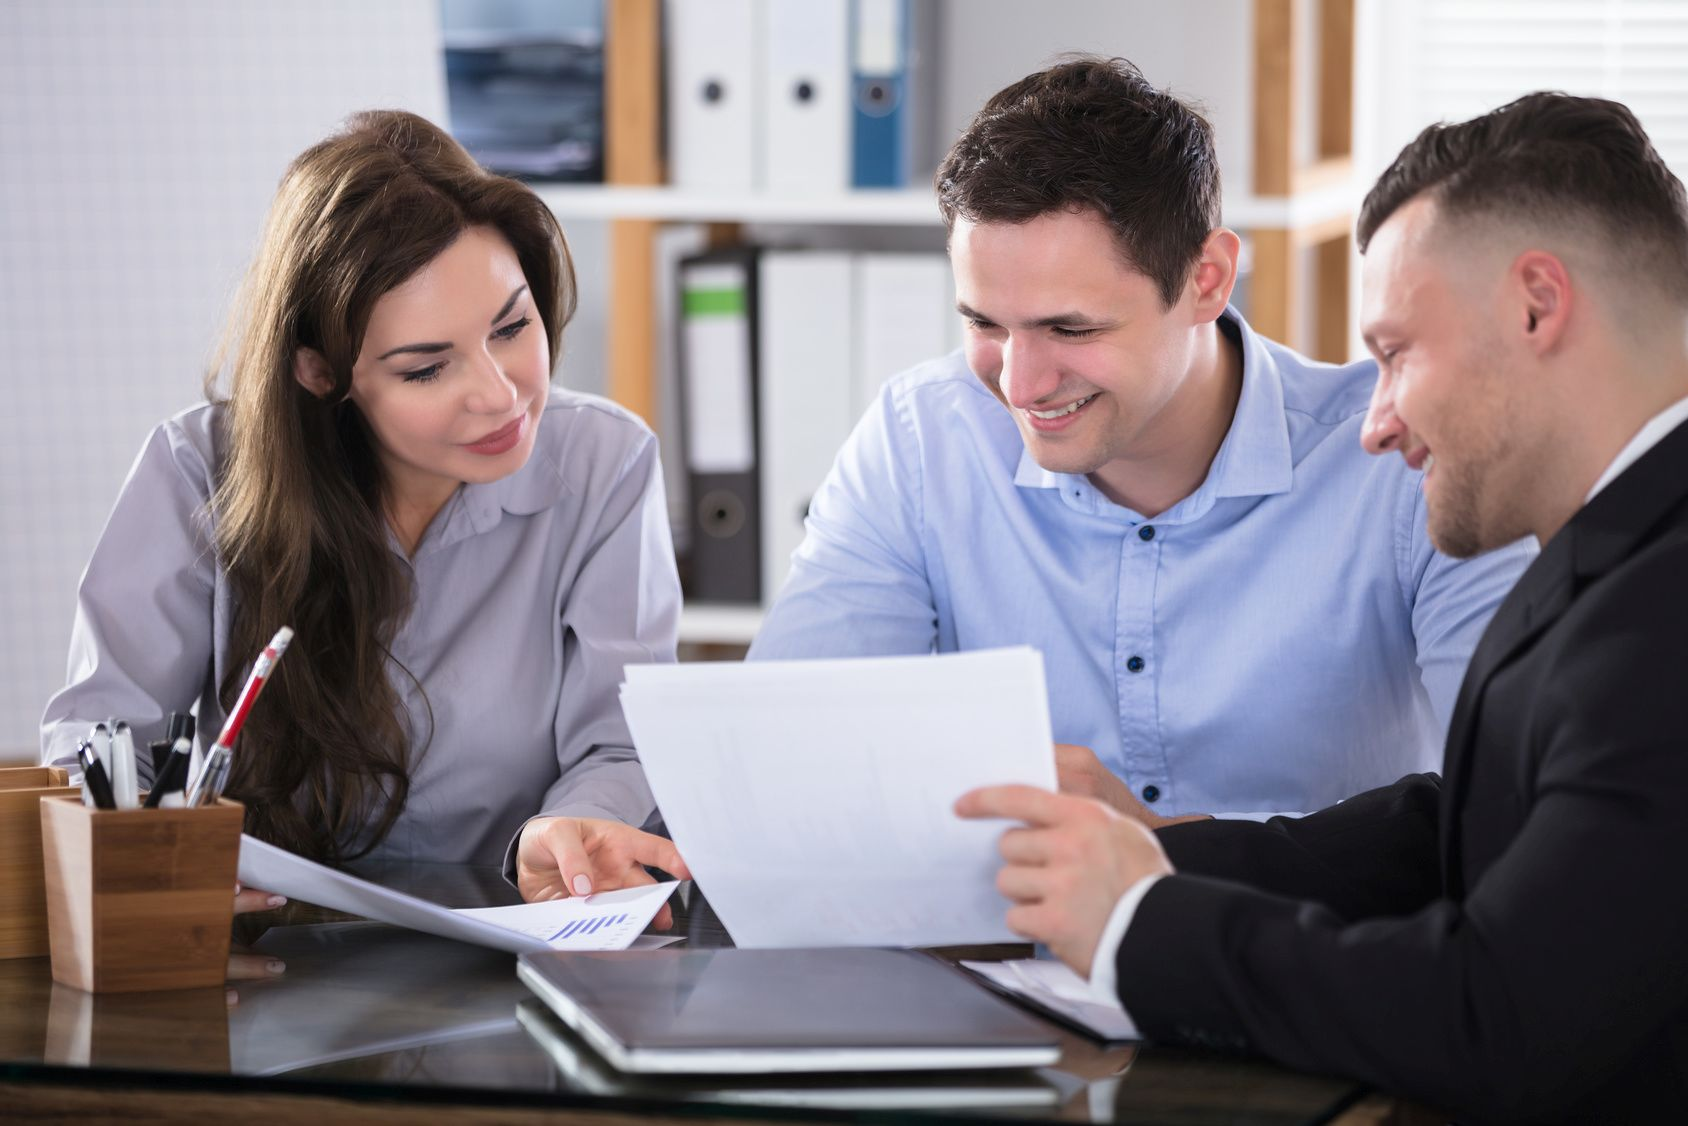 Training Business Analysis and Valuation